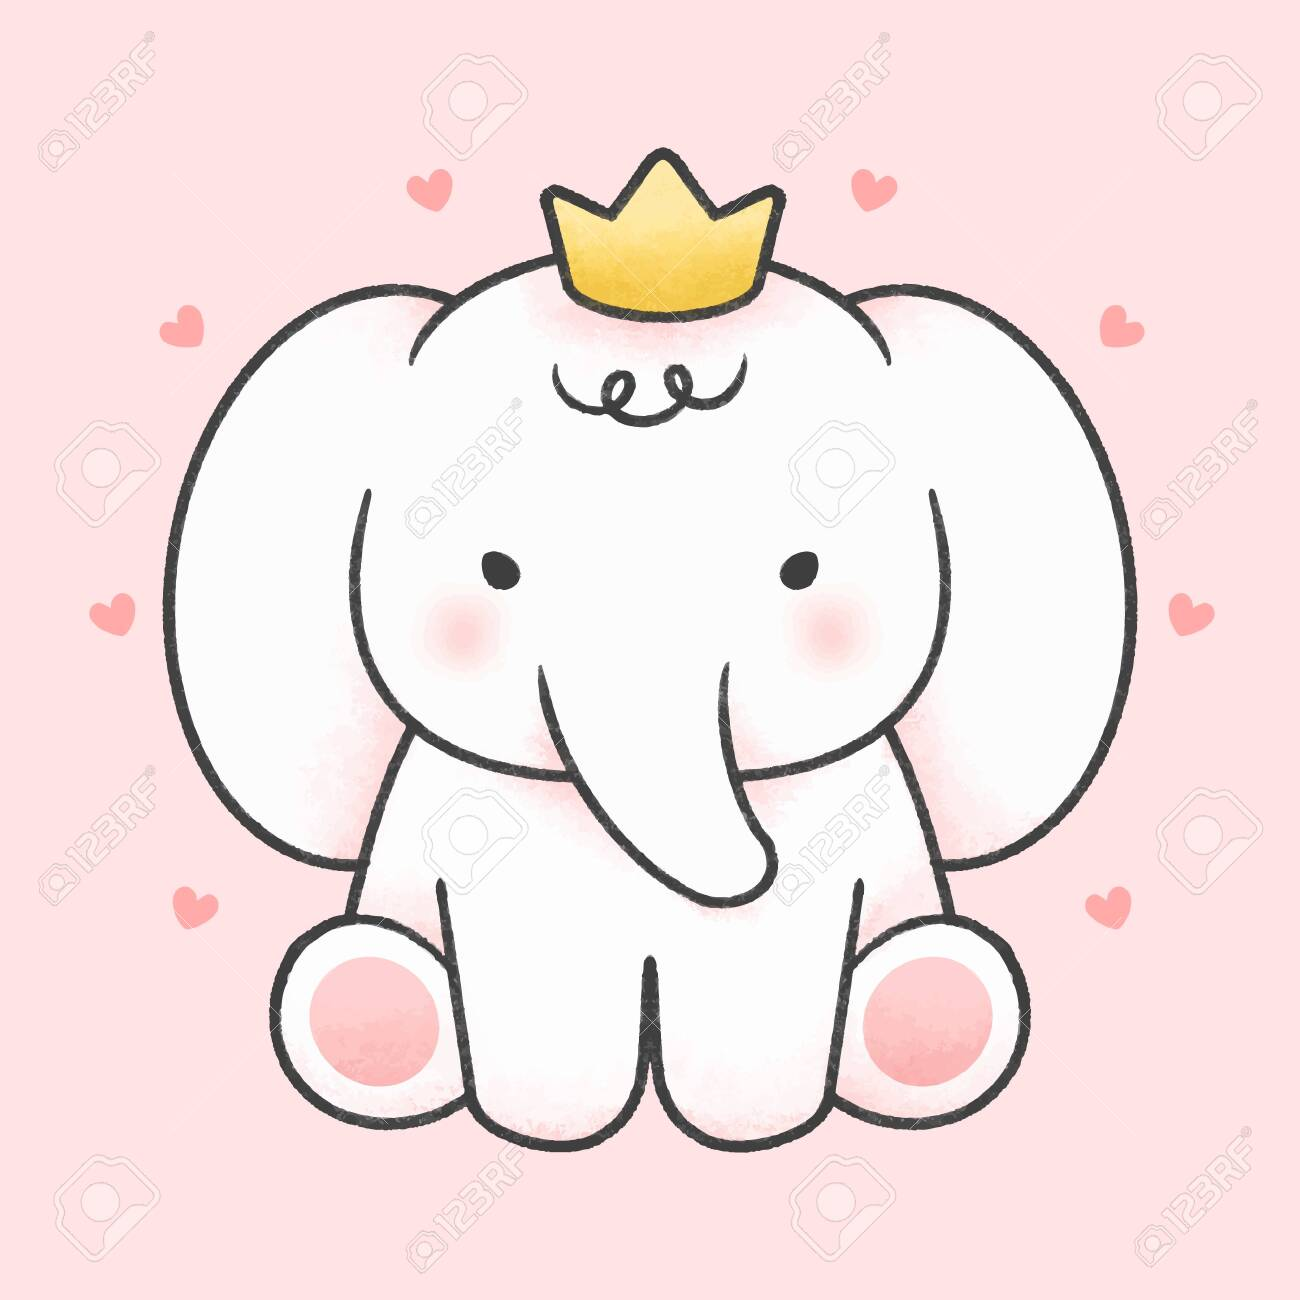 Cute Elephant Wear Crown Hand Drawn Cartoon Animal Character Royalty Free Cliparts Vectors And Stock Illustration Image 138639542 The most common elephant with crown material is metal. cute elephant wear crown hand drawn cartoon animal character